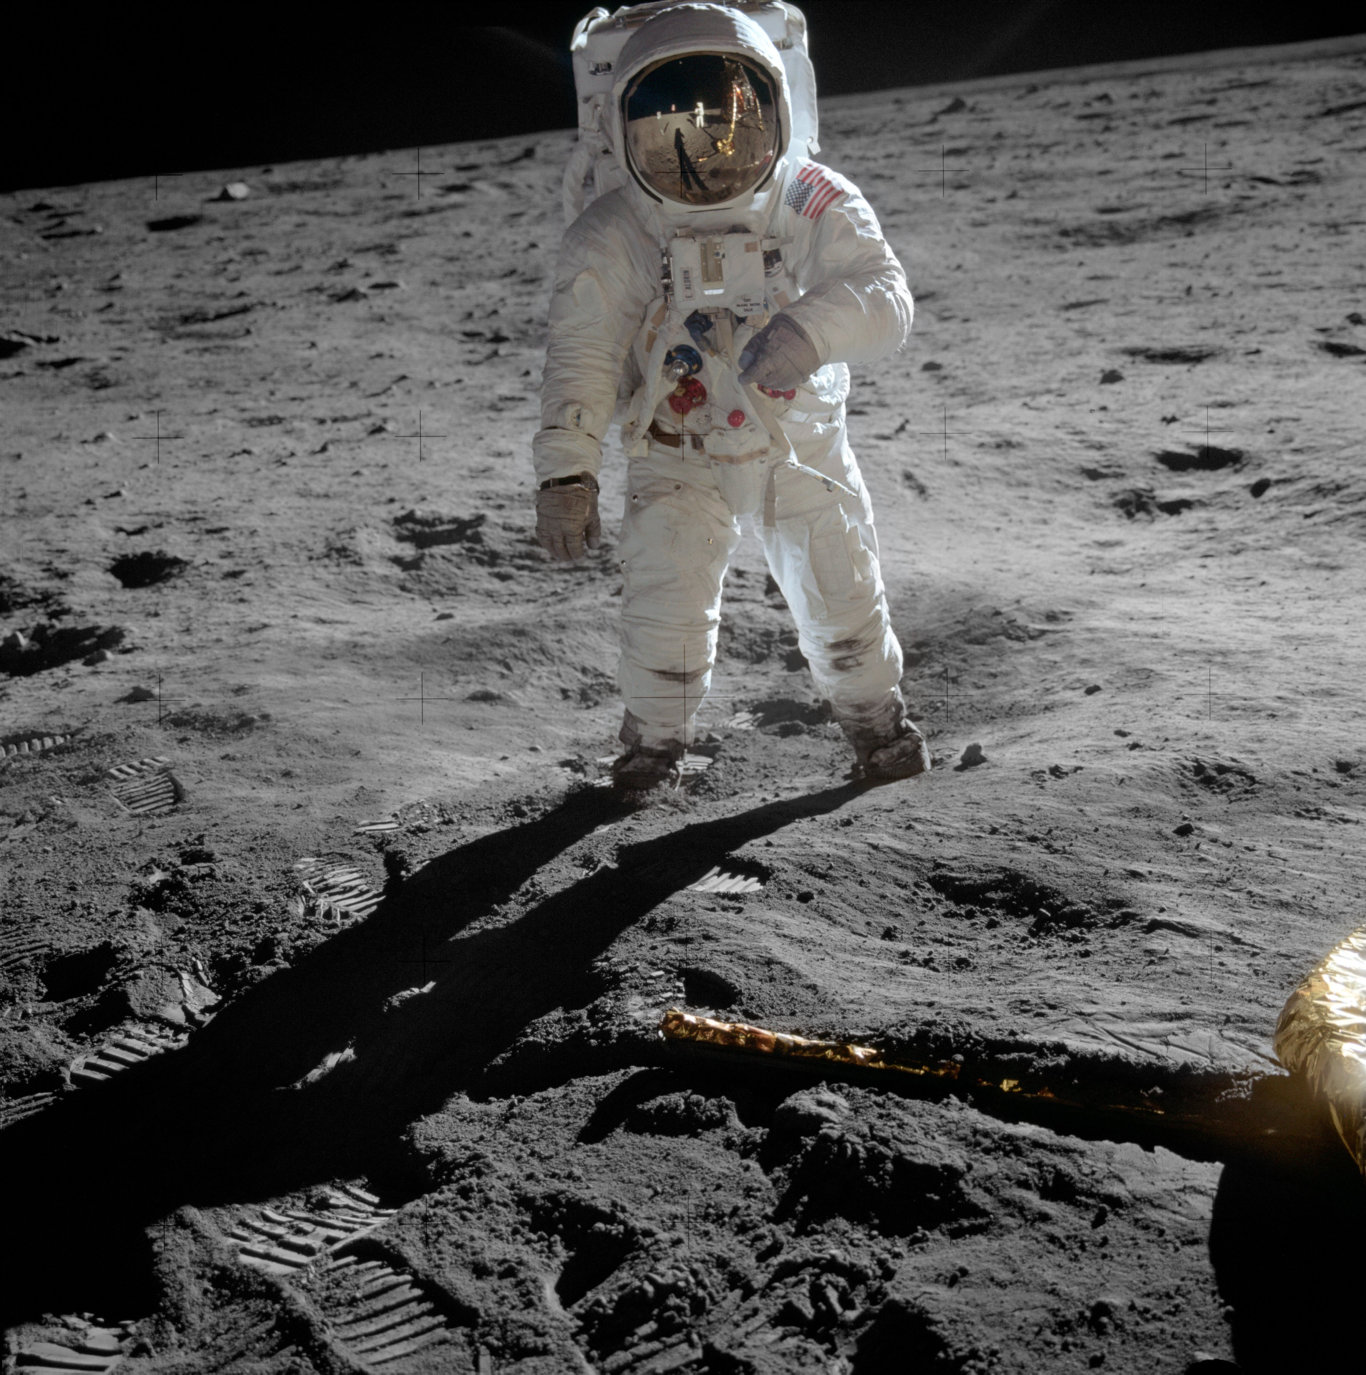 Buzz Aldrin on the moon in a photo taken by Neil Armstrong.